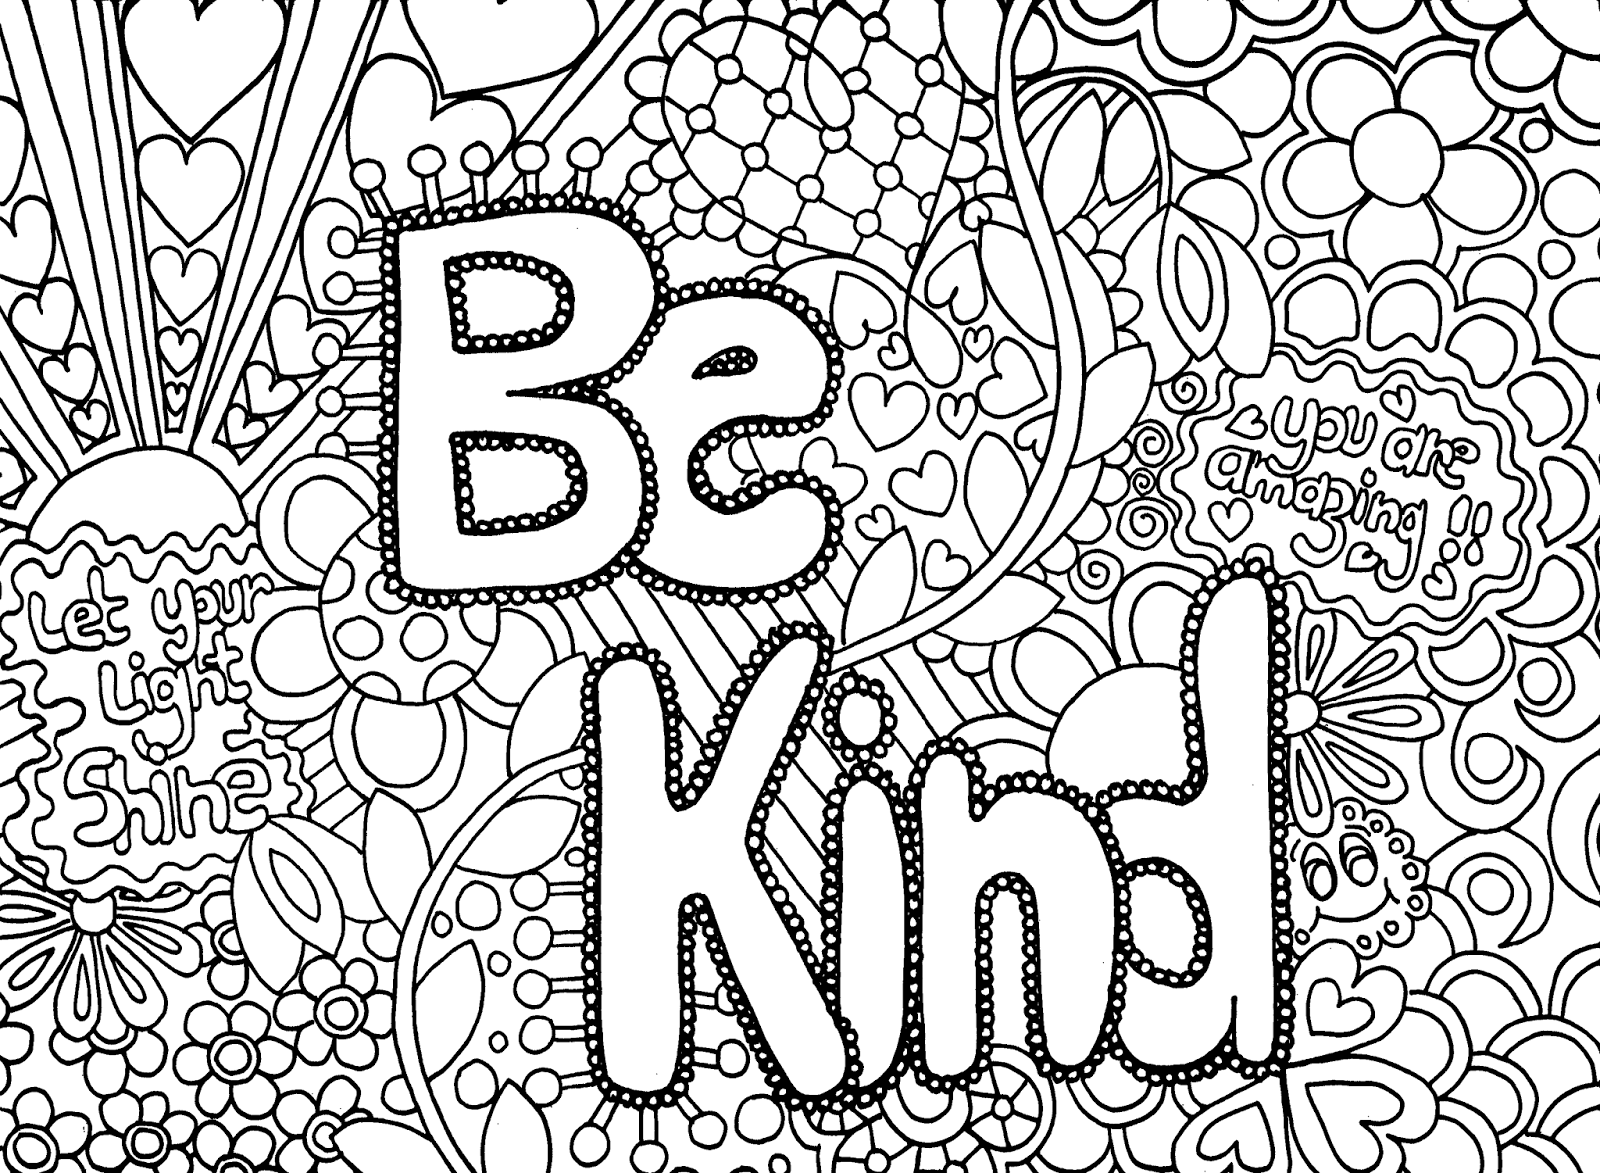 Coloring Activities for Teens